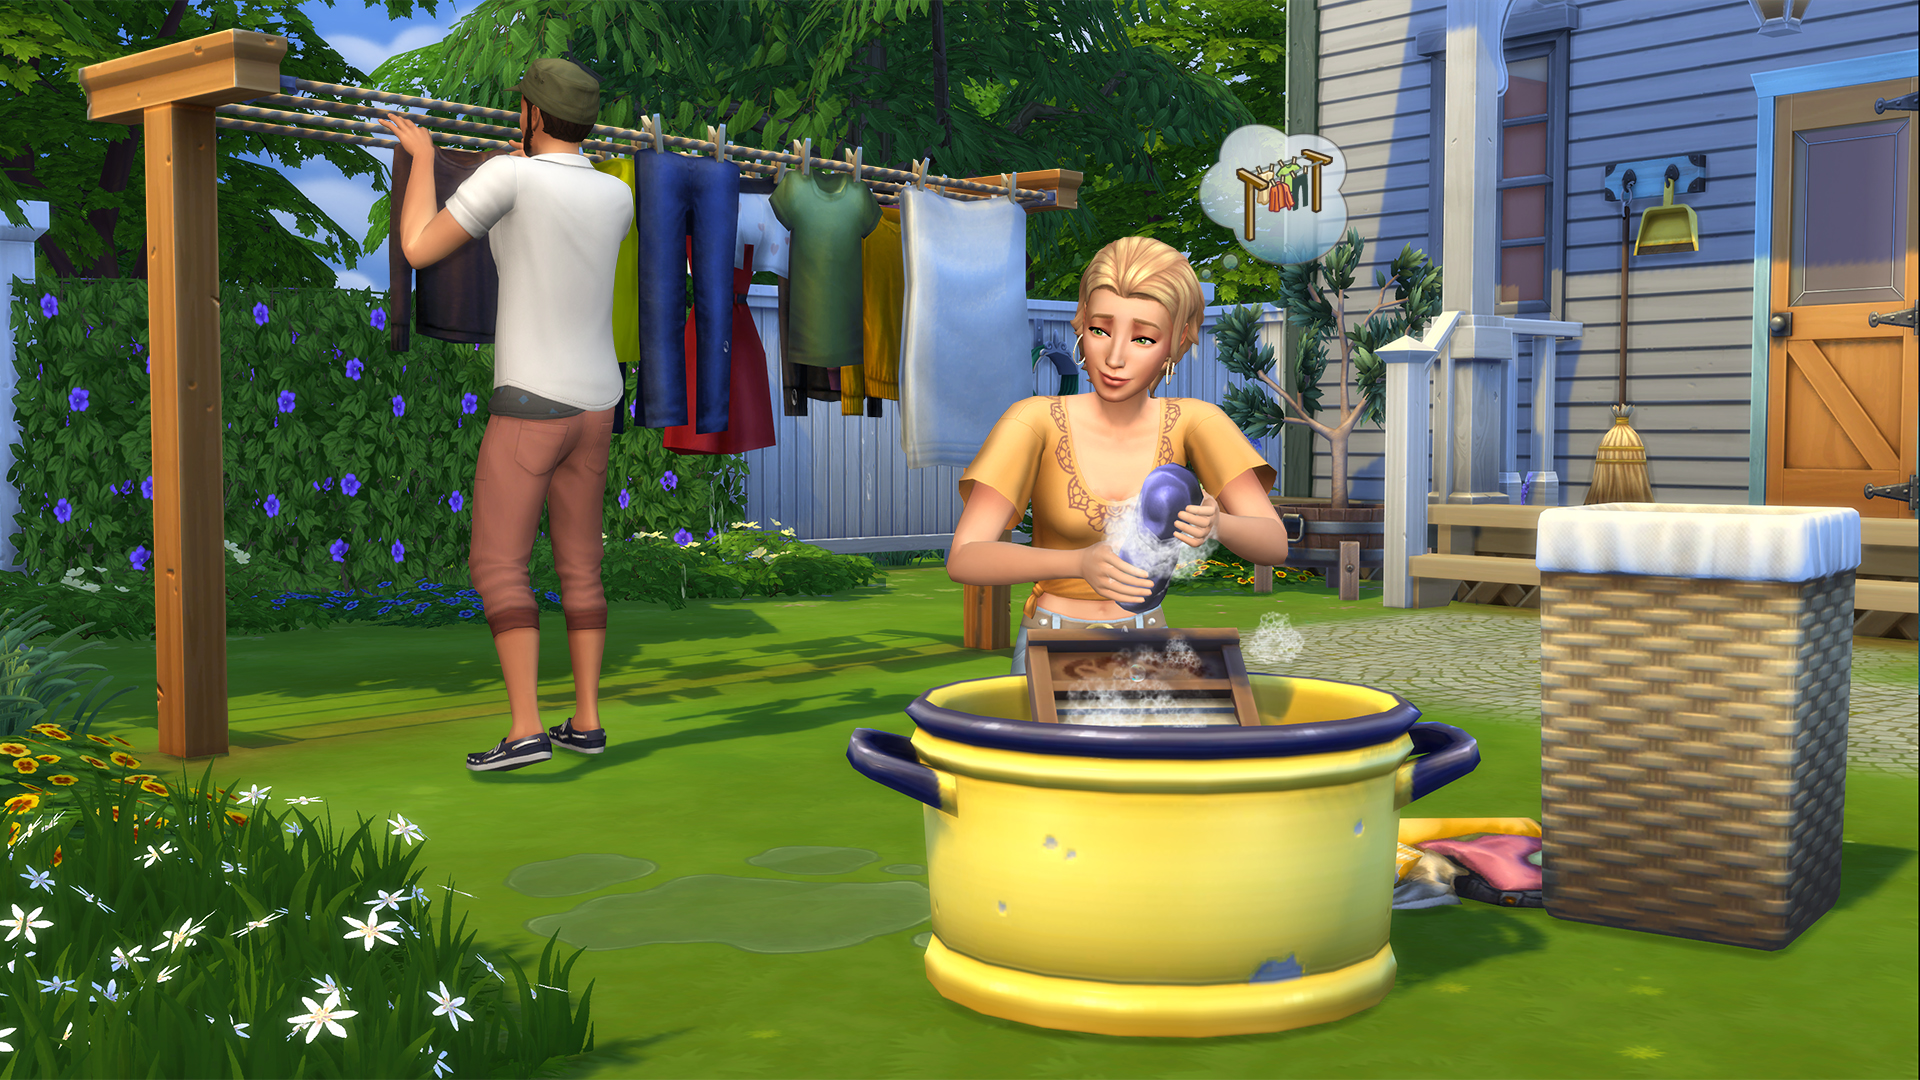 The Sims 4: Deluxe Edition